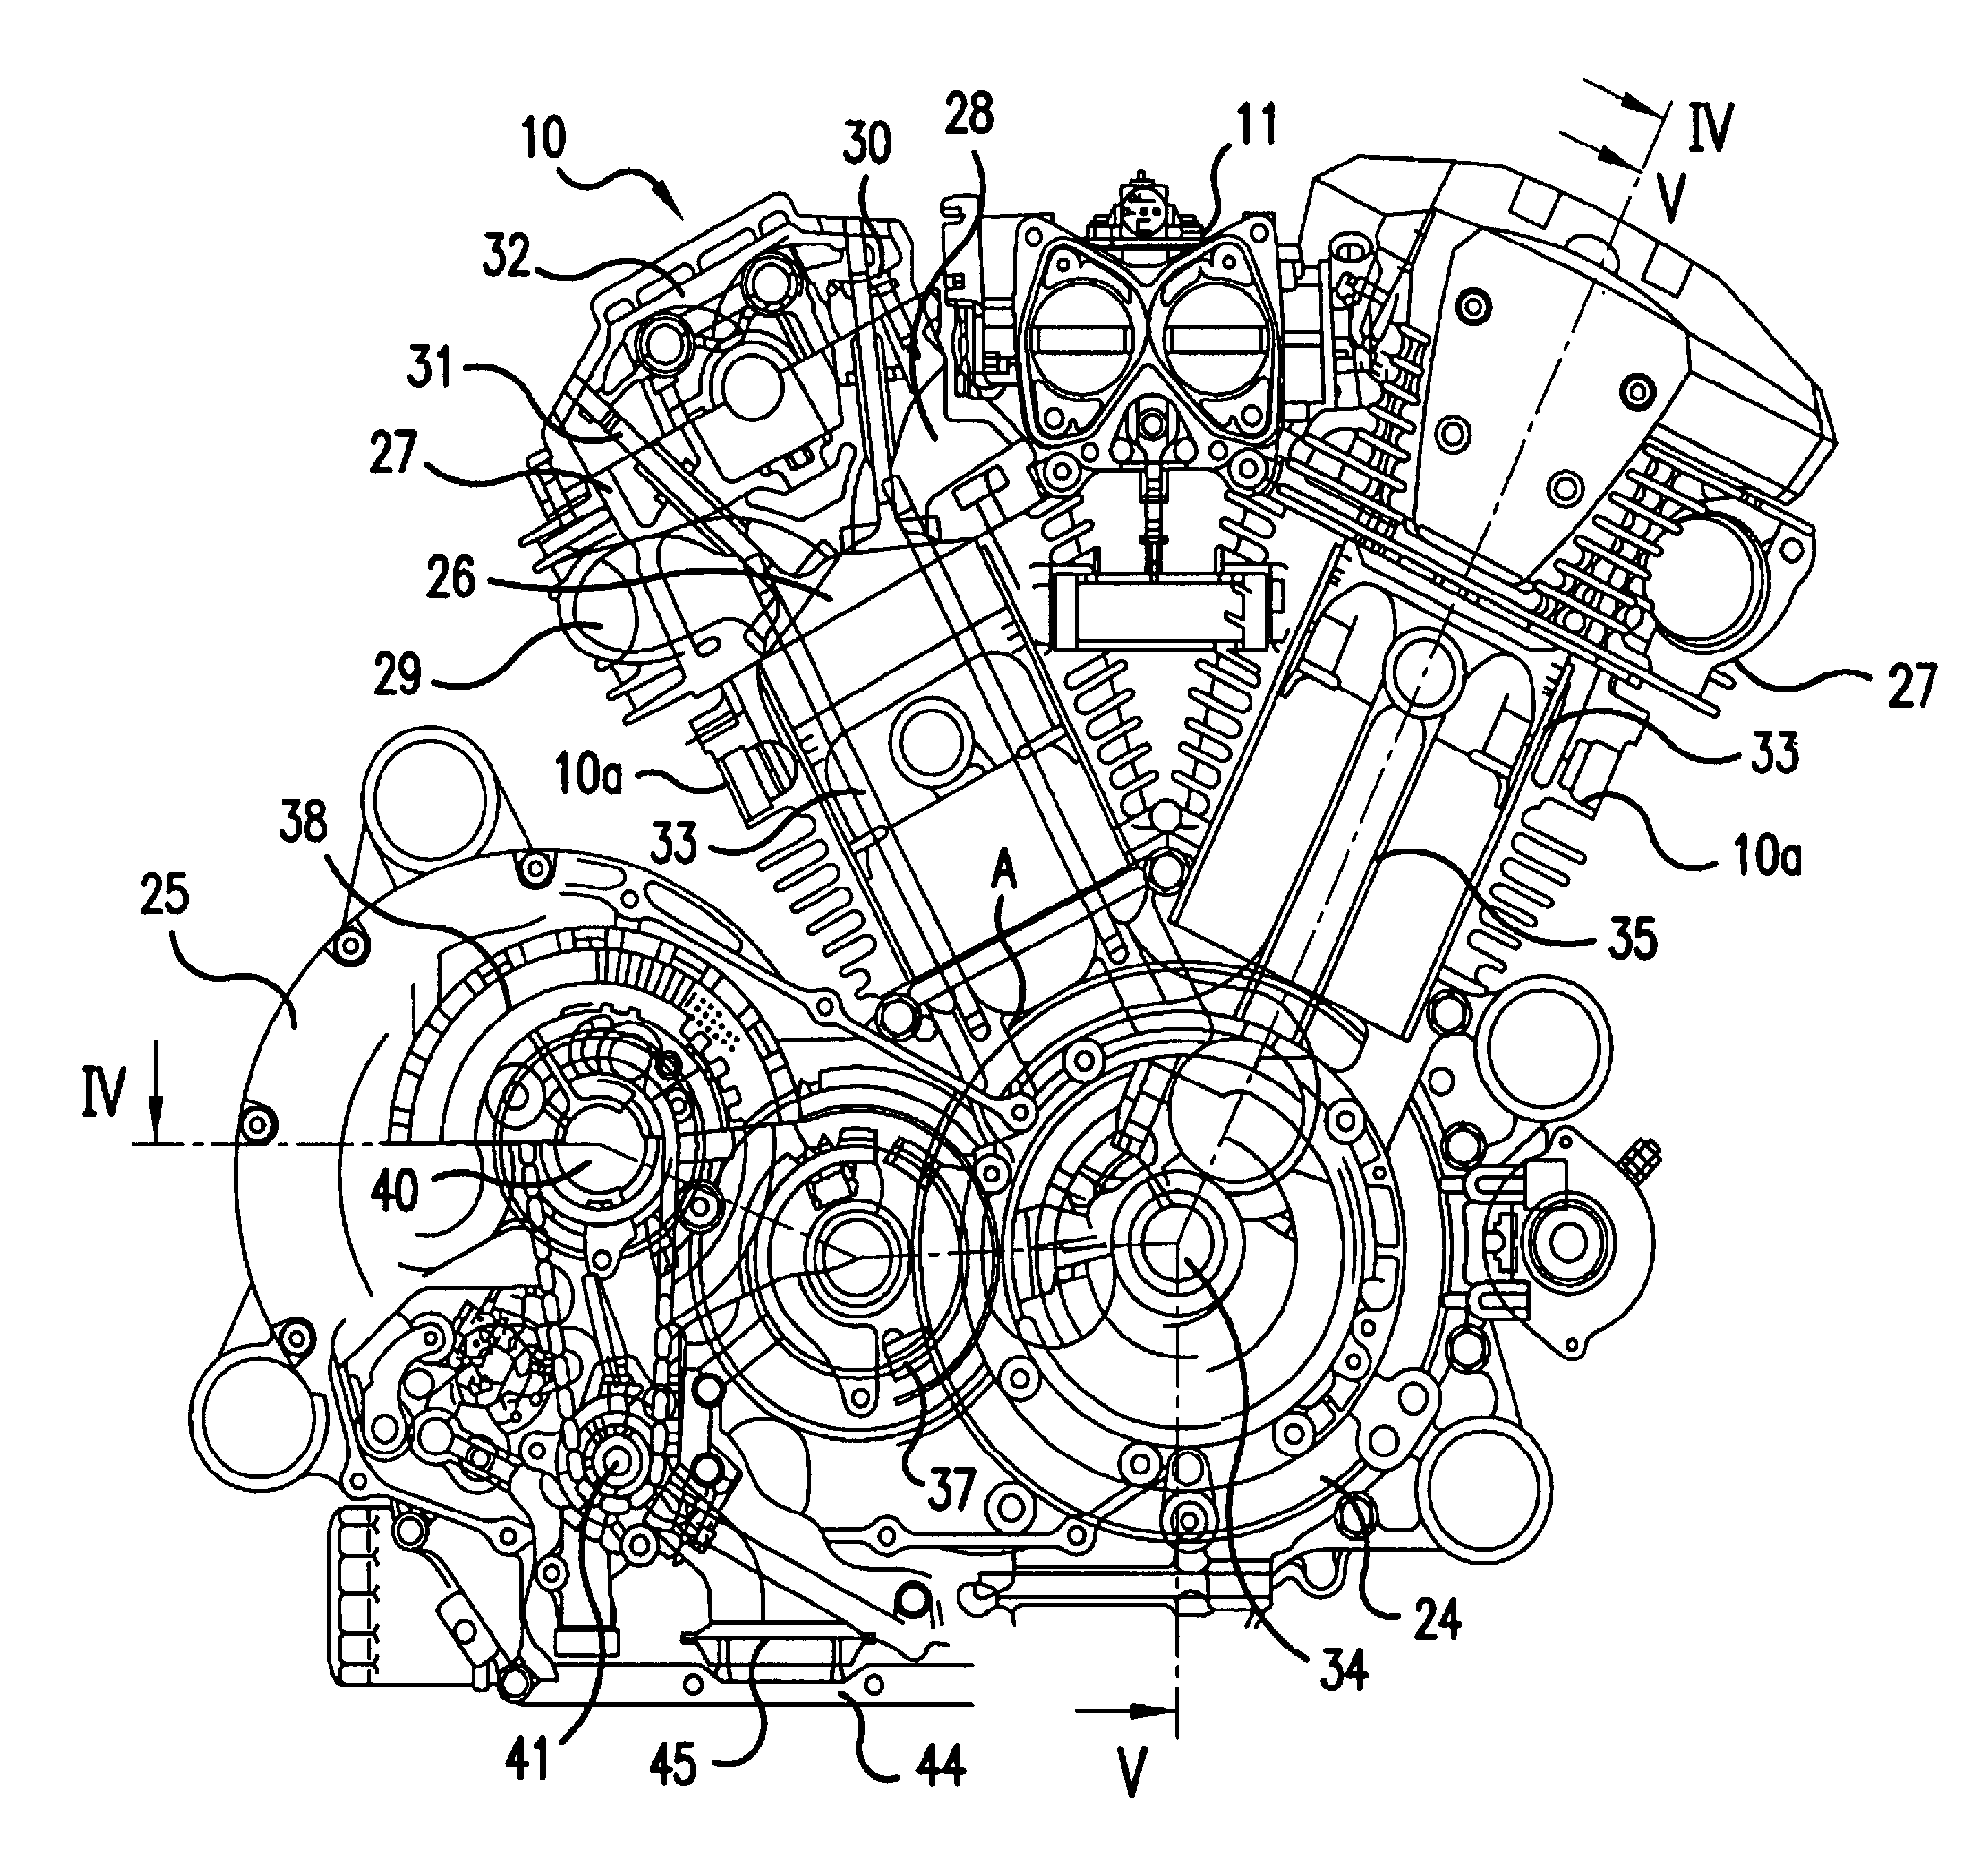 Harley Davidson Engine Cross Section Sketch Coloring Page